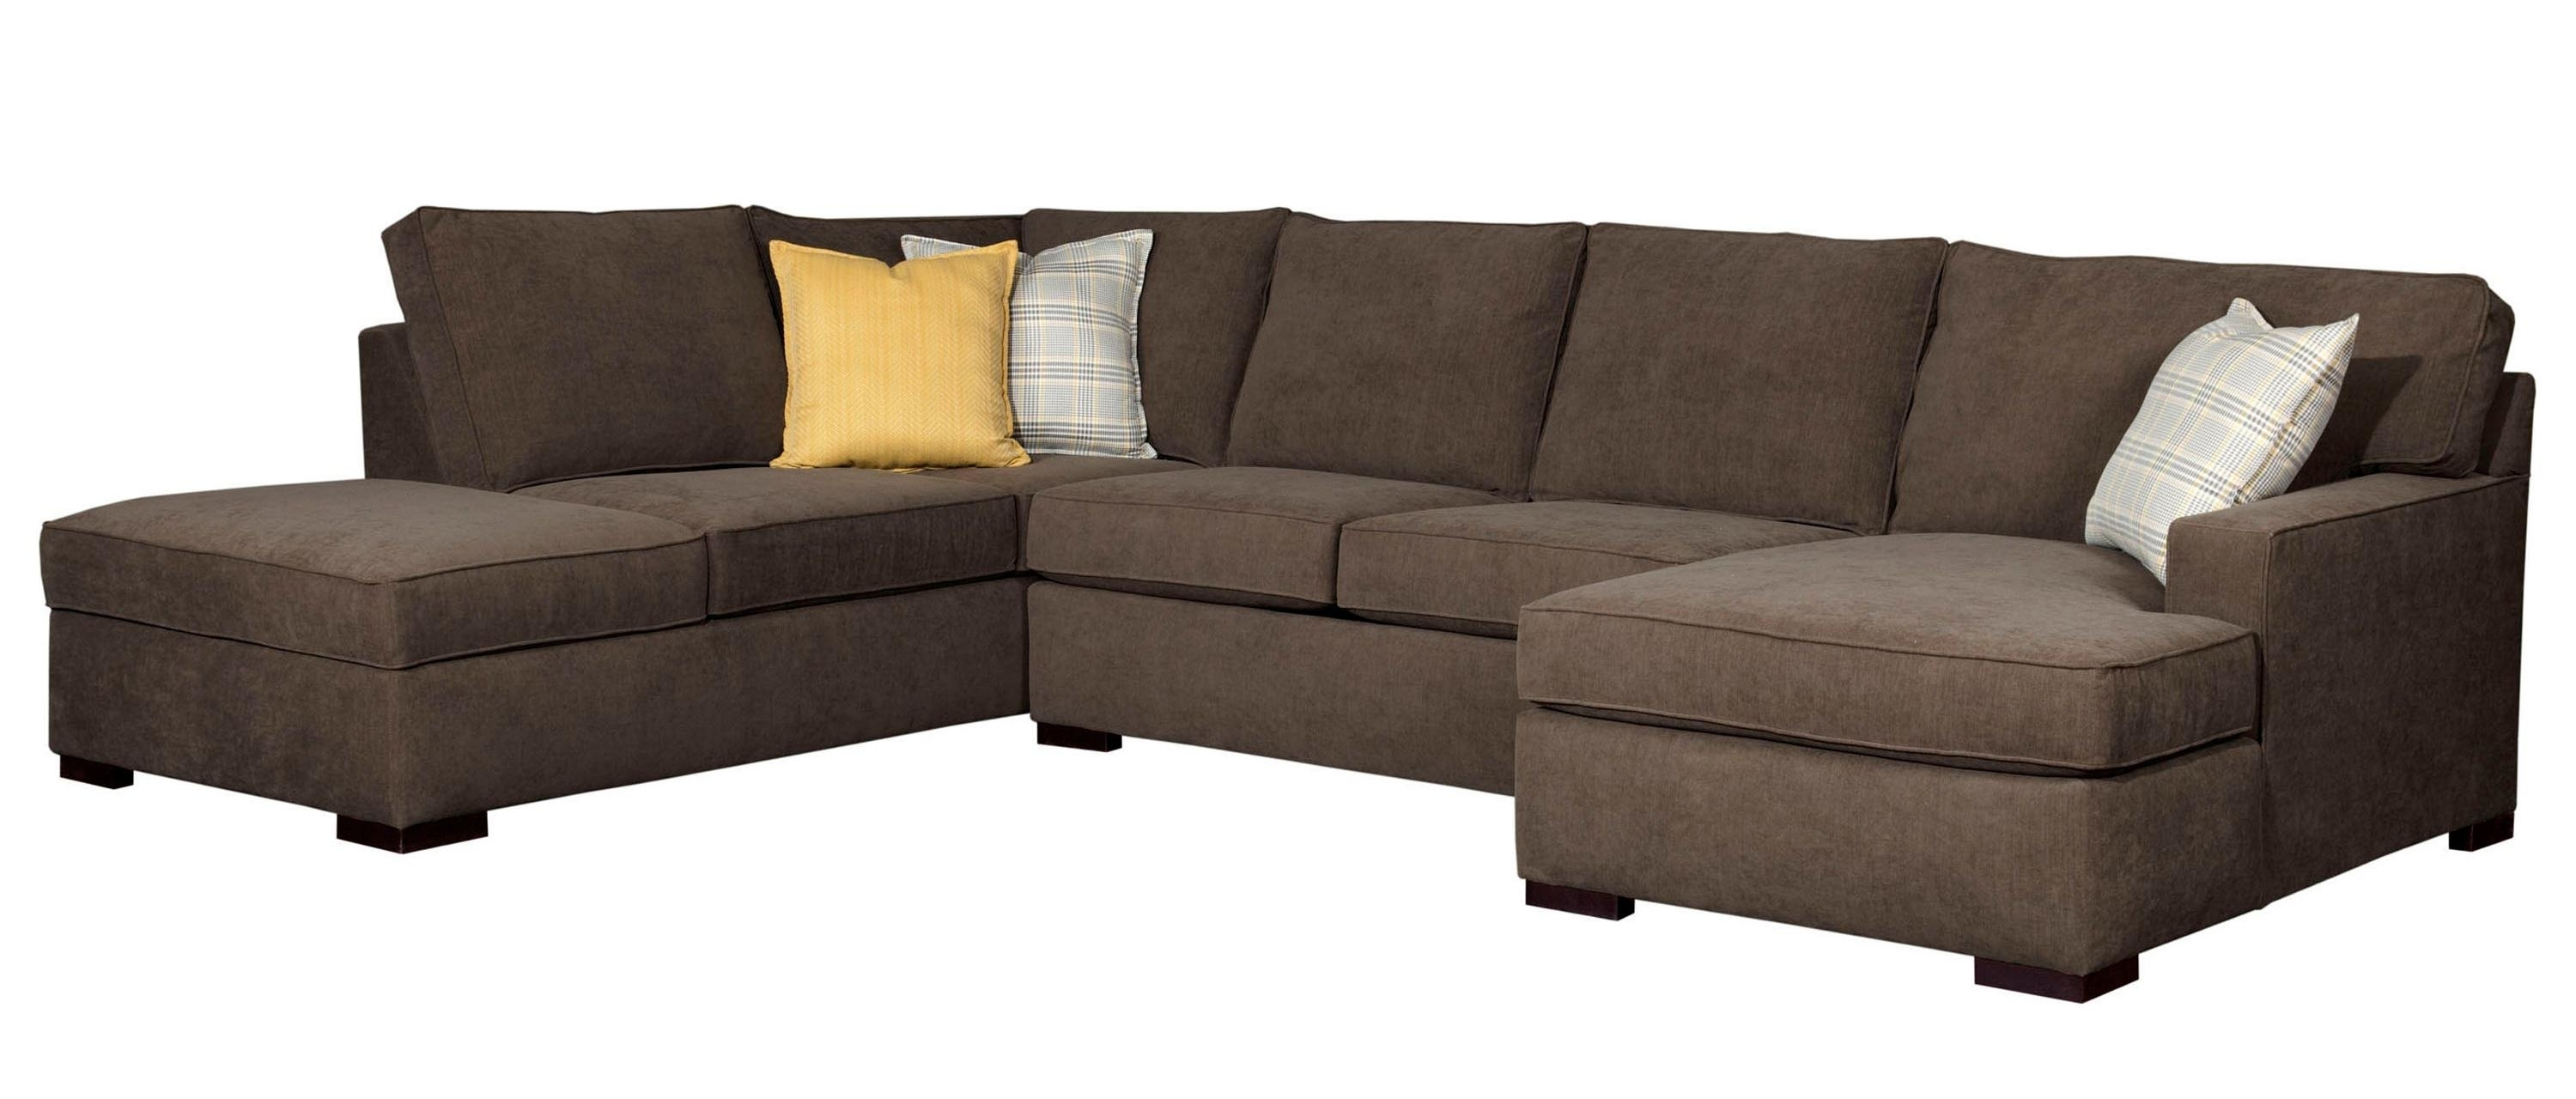 Jonathan Louis Choices – Artemis Four Piece Sectional With Laf Intended For Sam Levitz Sectional Sofas (Image 6 of 10)